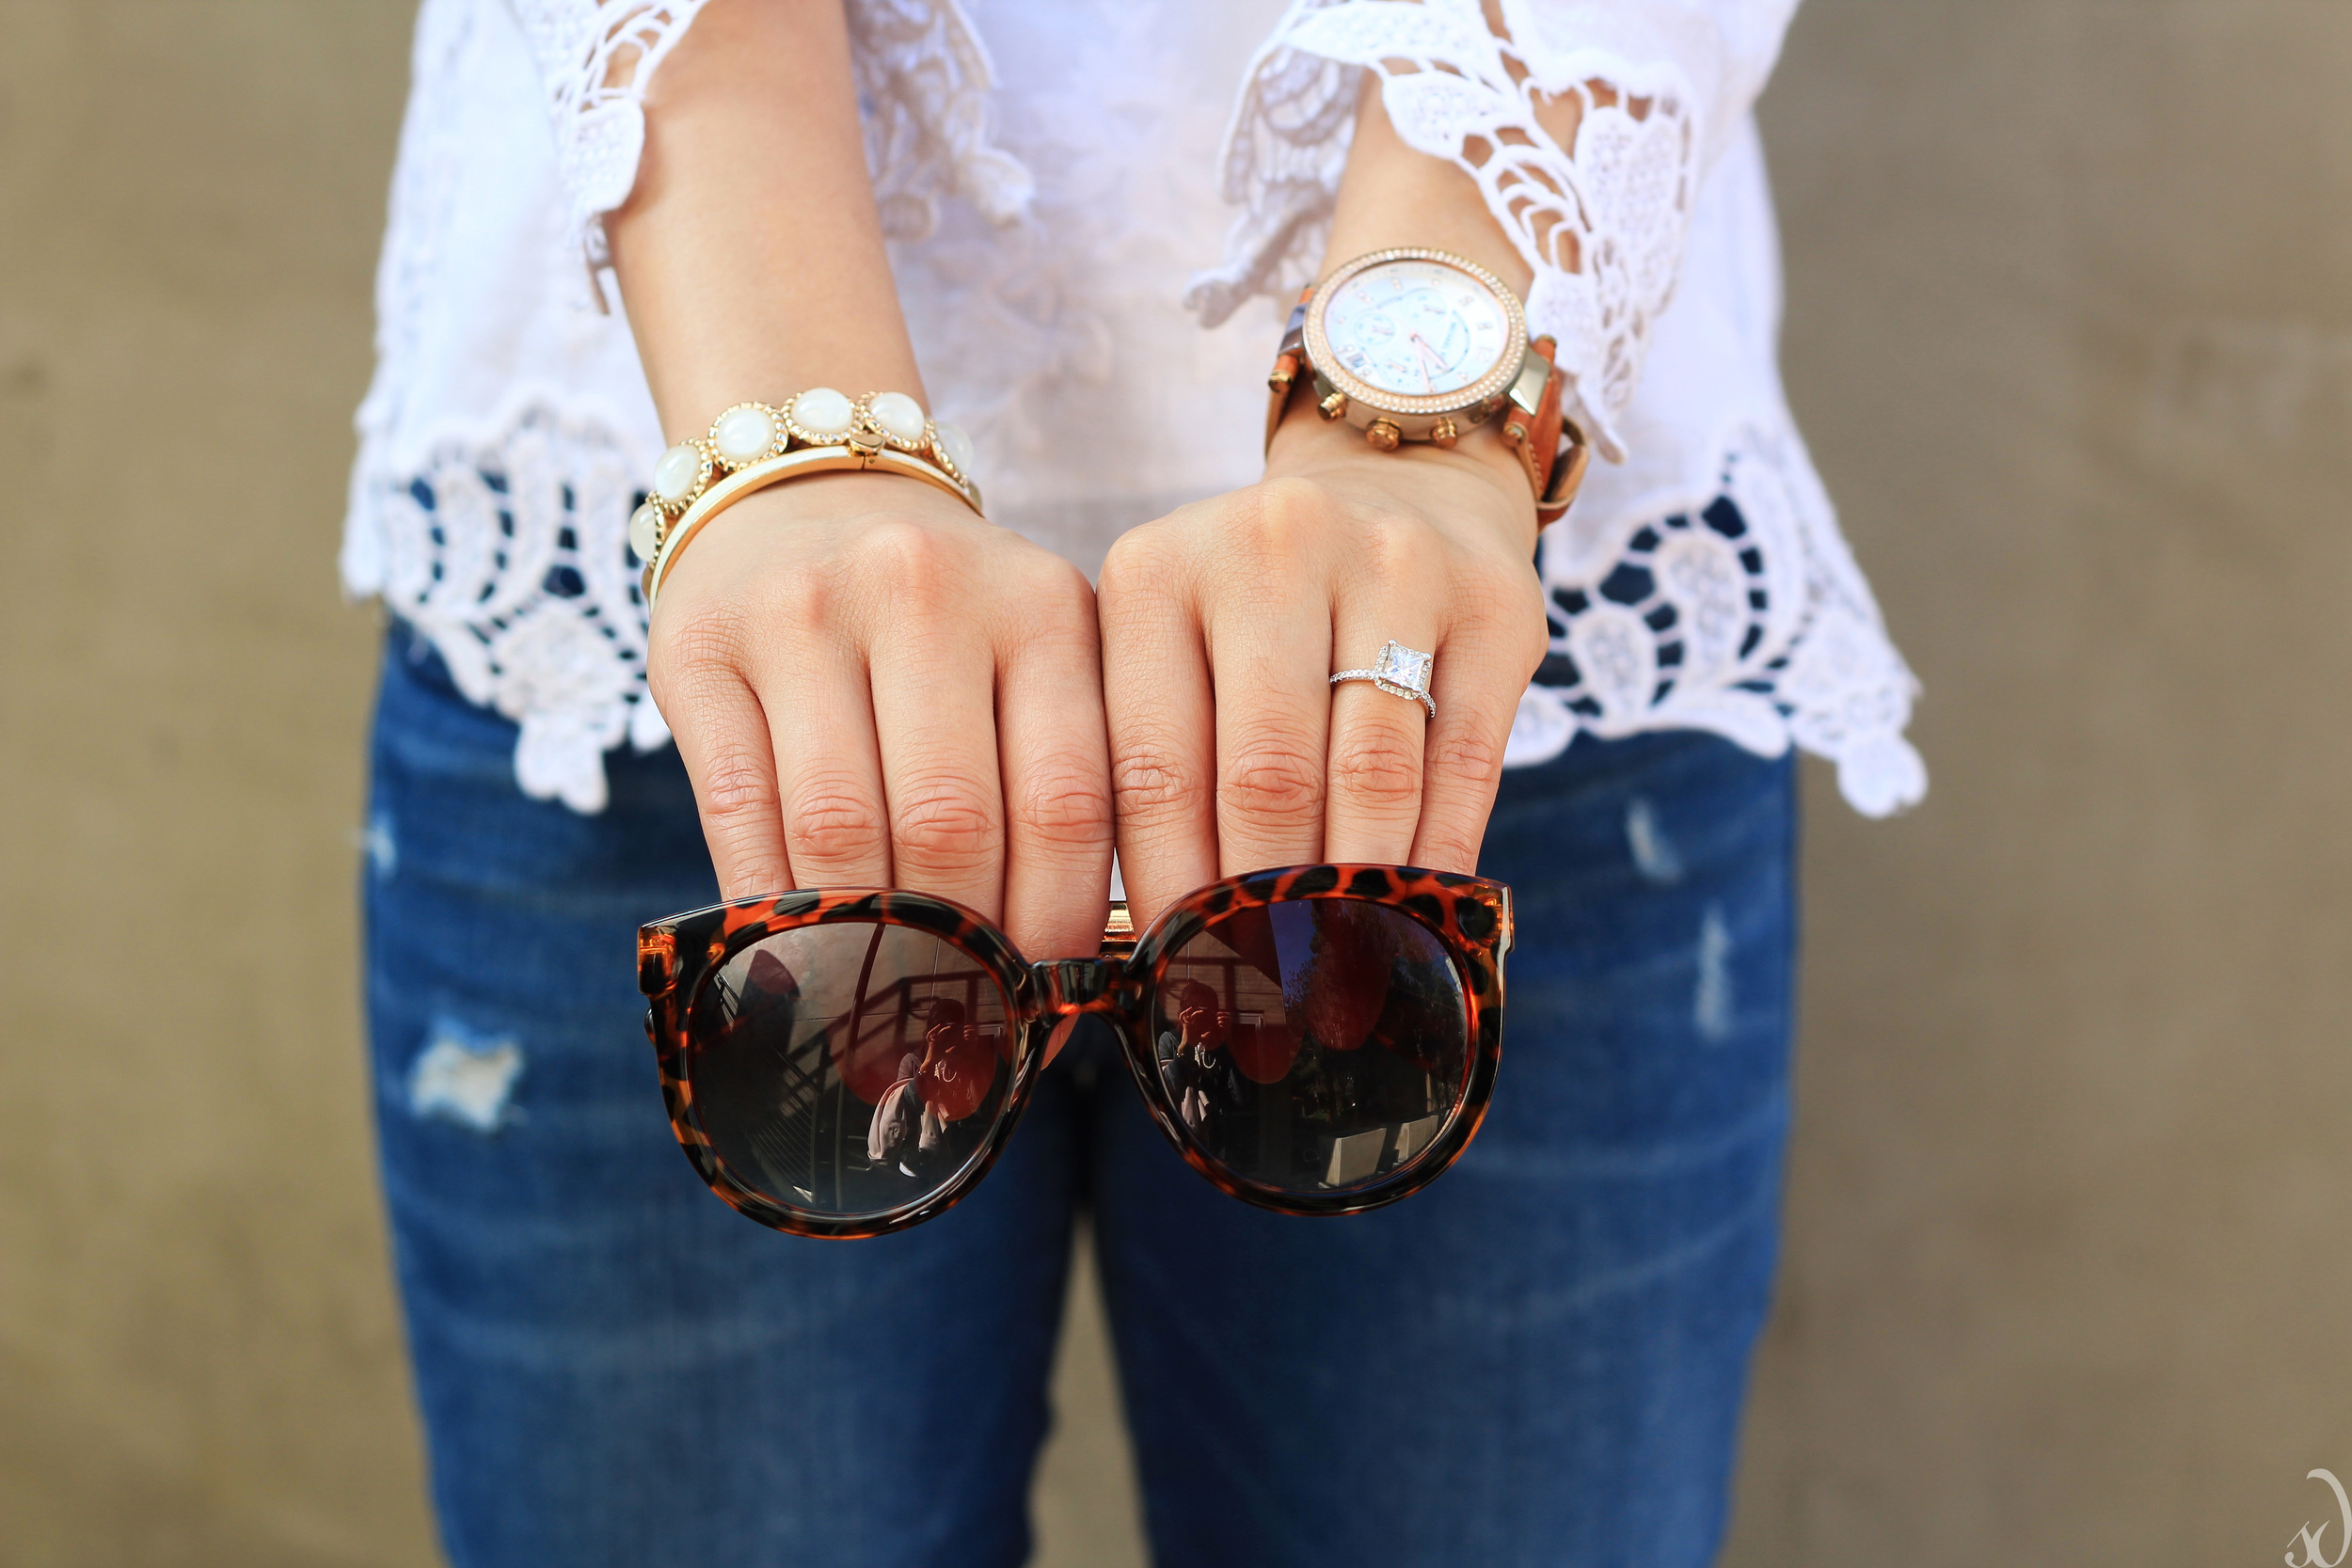 Sunglasses, tortoise shell, ivory, bracelets, engagement ring, lace